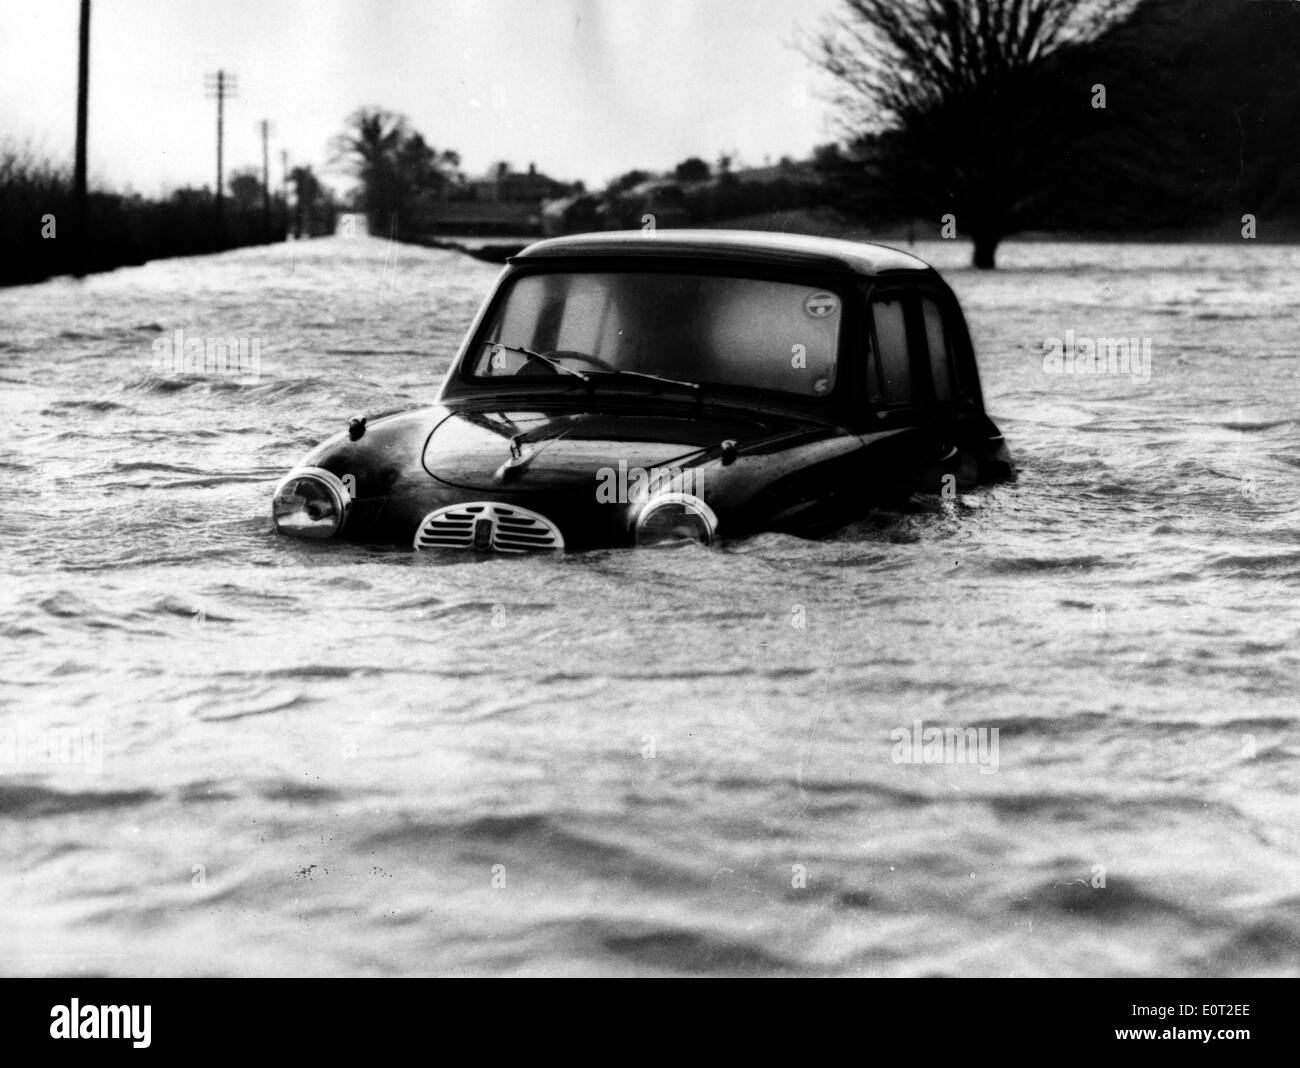 NATURAL DISASTER: 1960 Floods in England - Stock Image